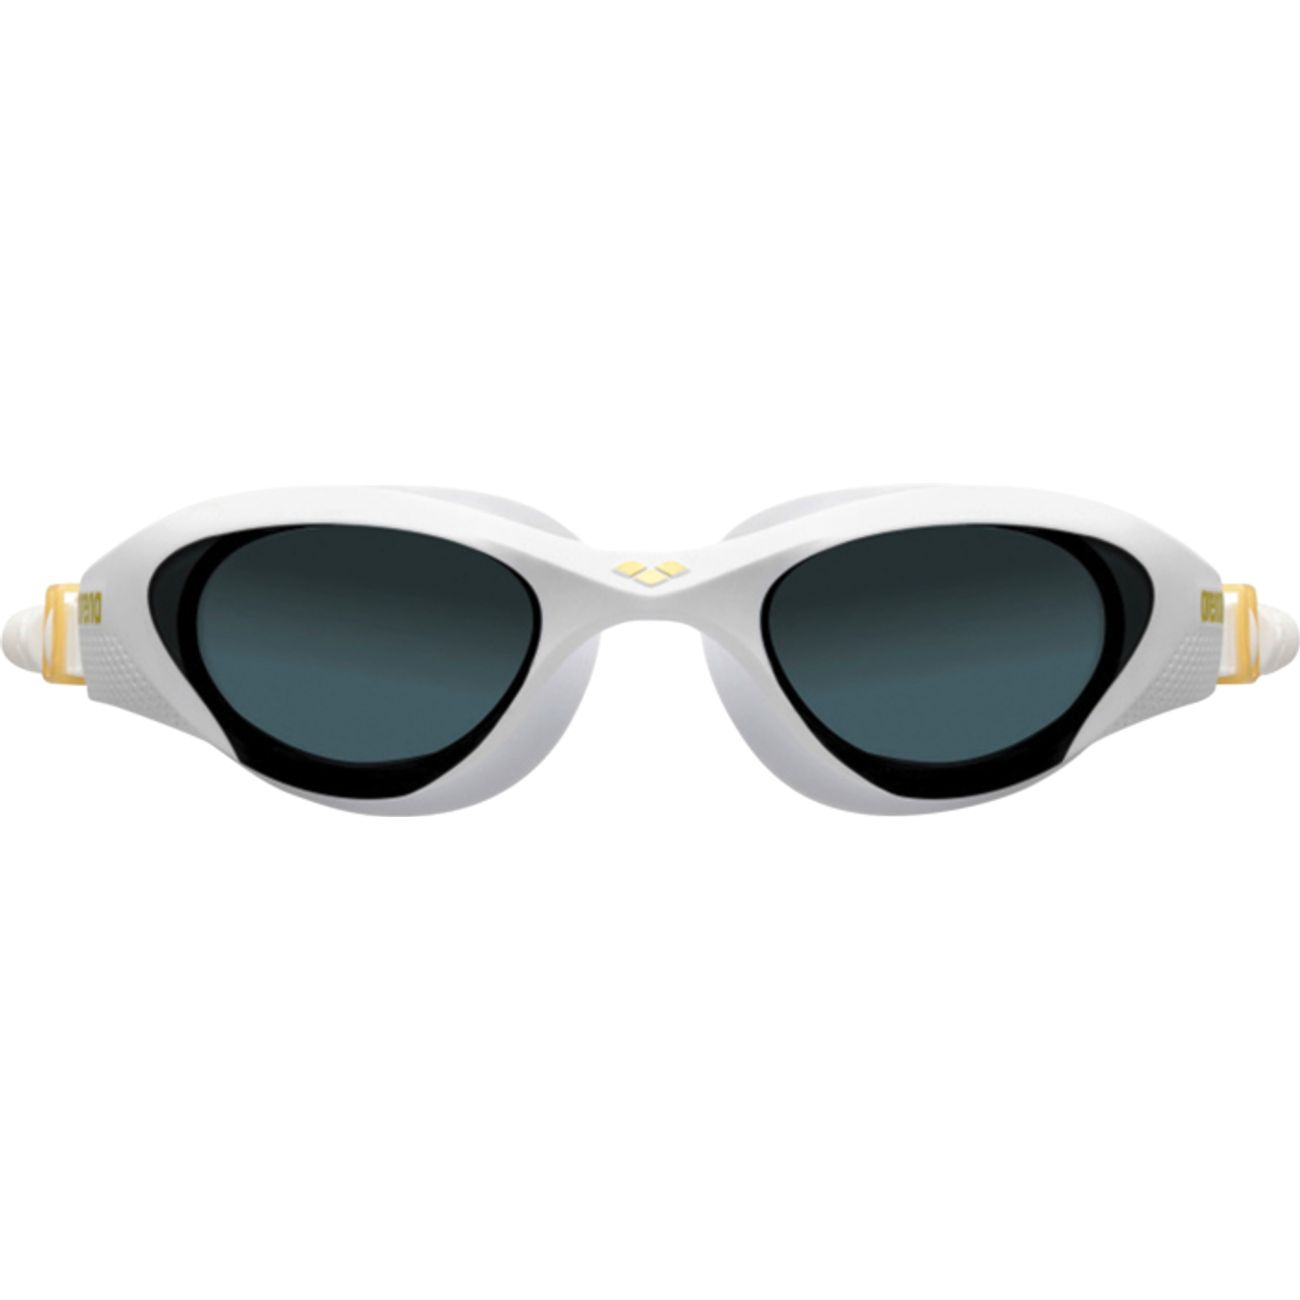 LUNETTES Natation homme ARENA THE ONE